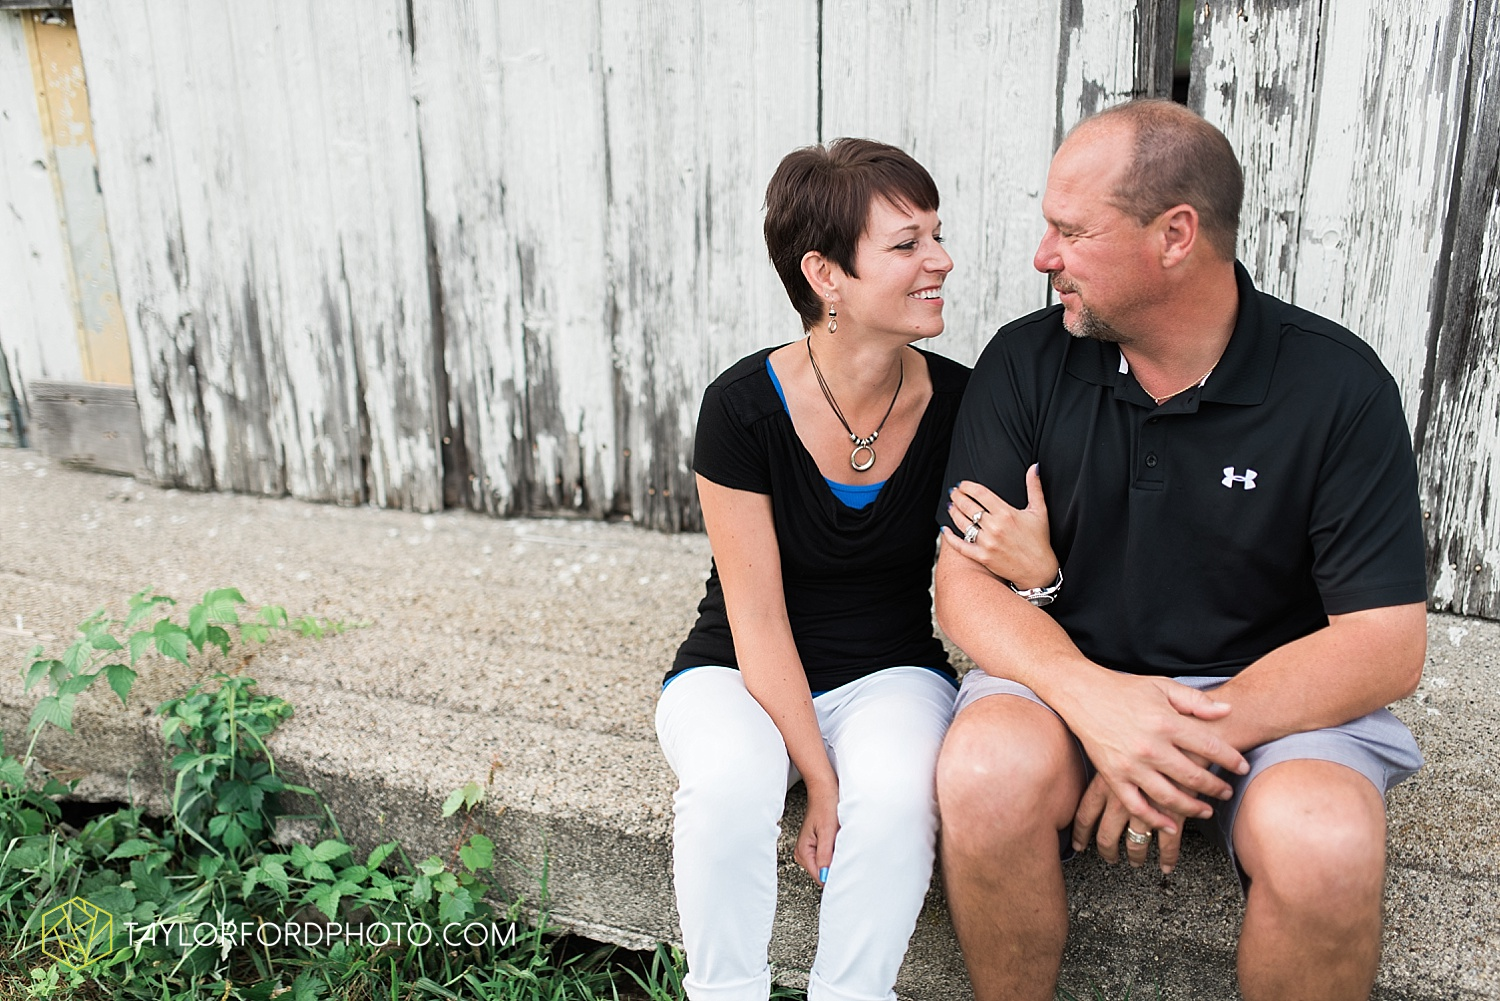 fort_wayne_indiana_family_photographer_taylor_ford_bryan_ohio_family_photographer_0359.jpg